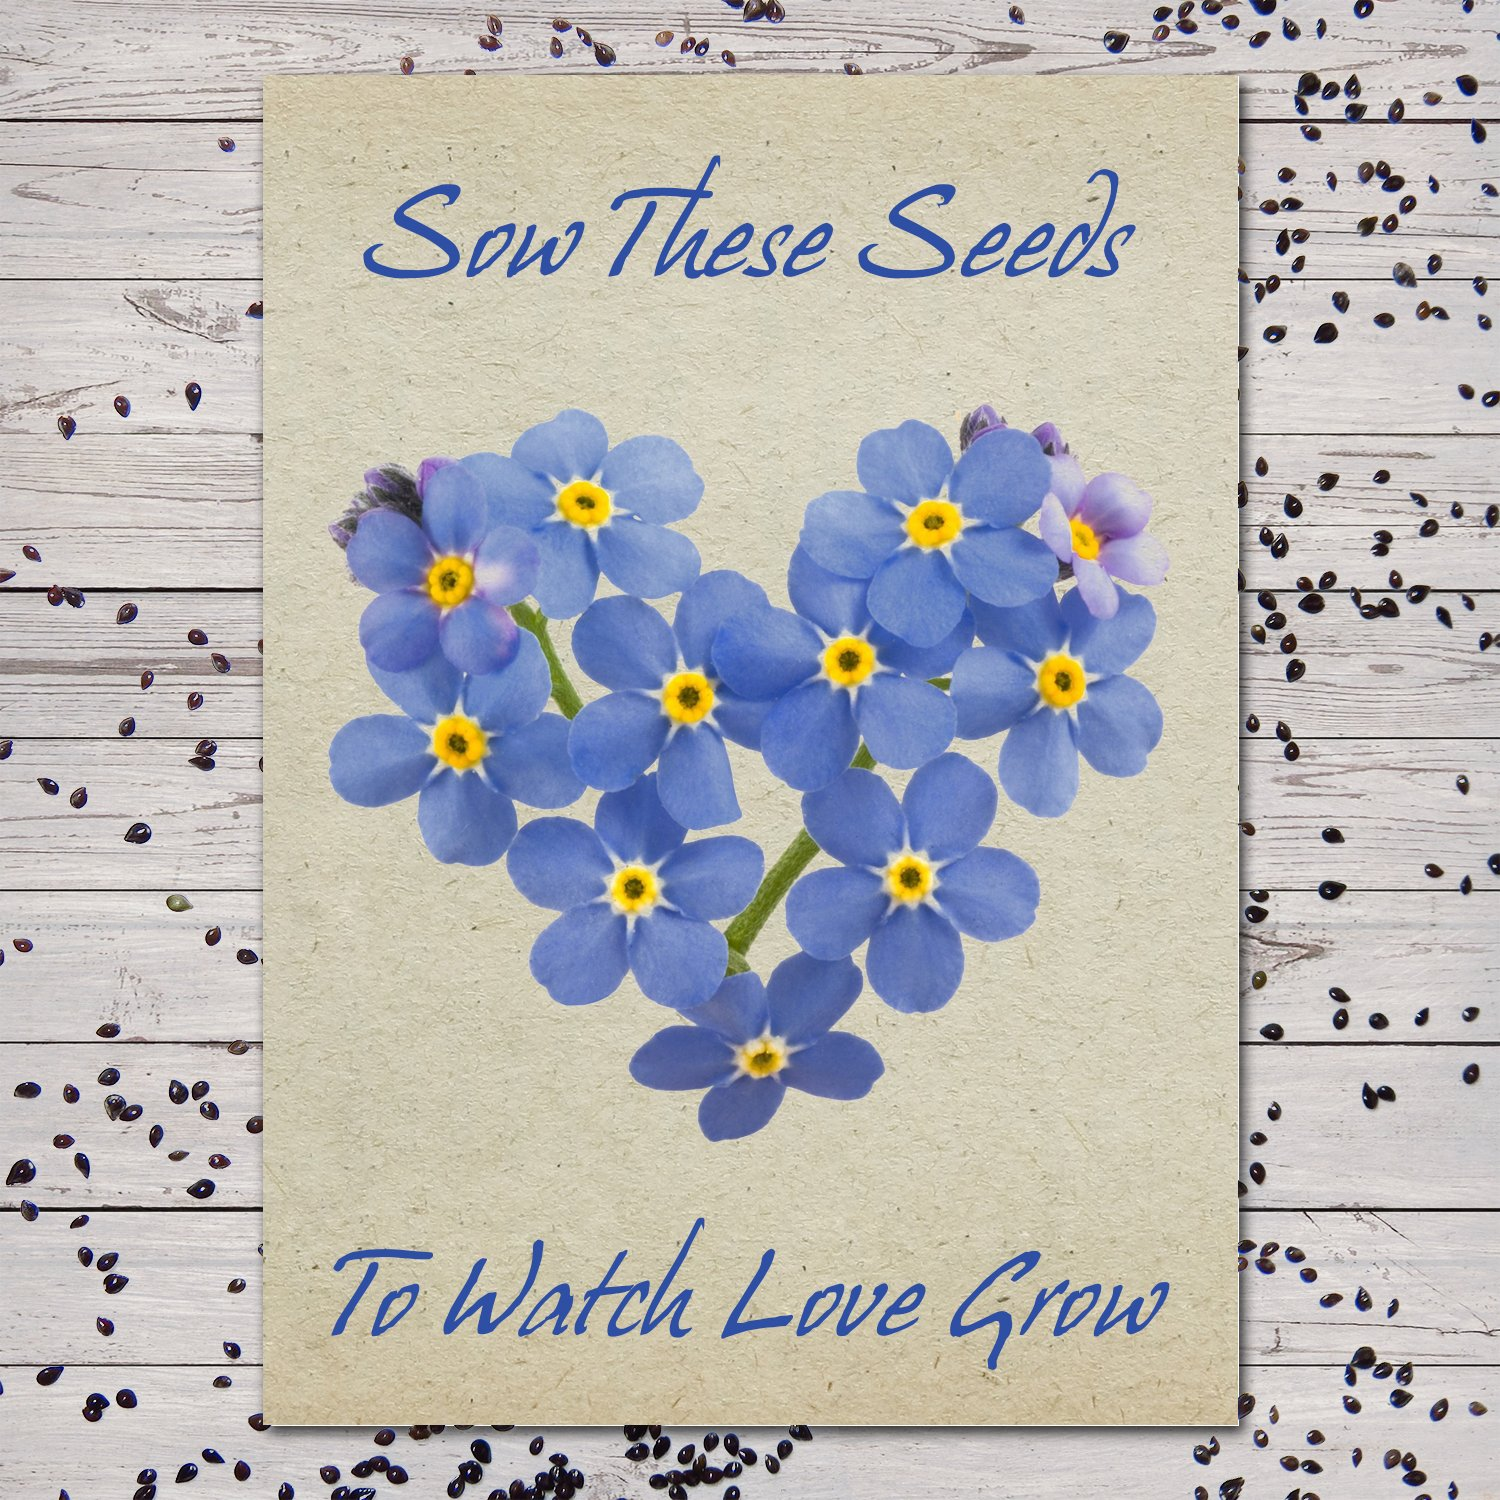 Set of 25 Individual Forget-Me-Not Seed Packets/Seed Favors (Watch Love Grow) by Seed Needs (Image #1)